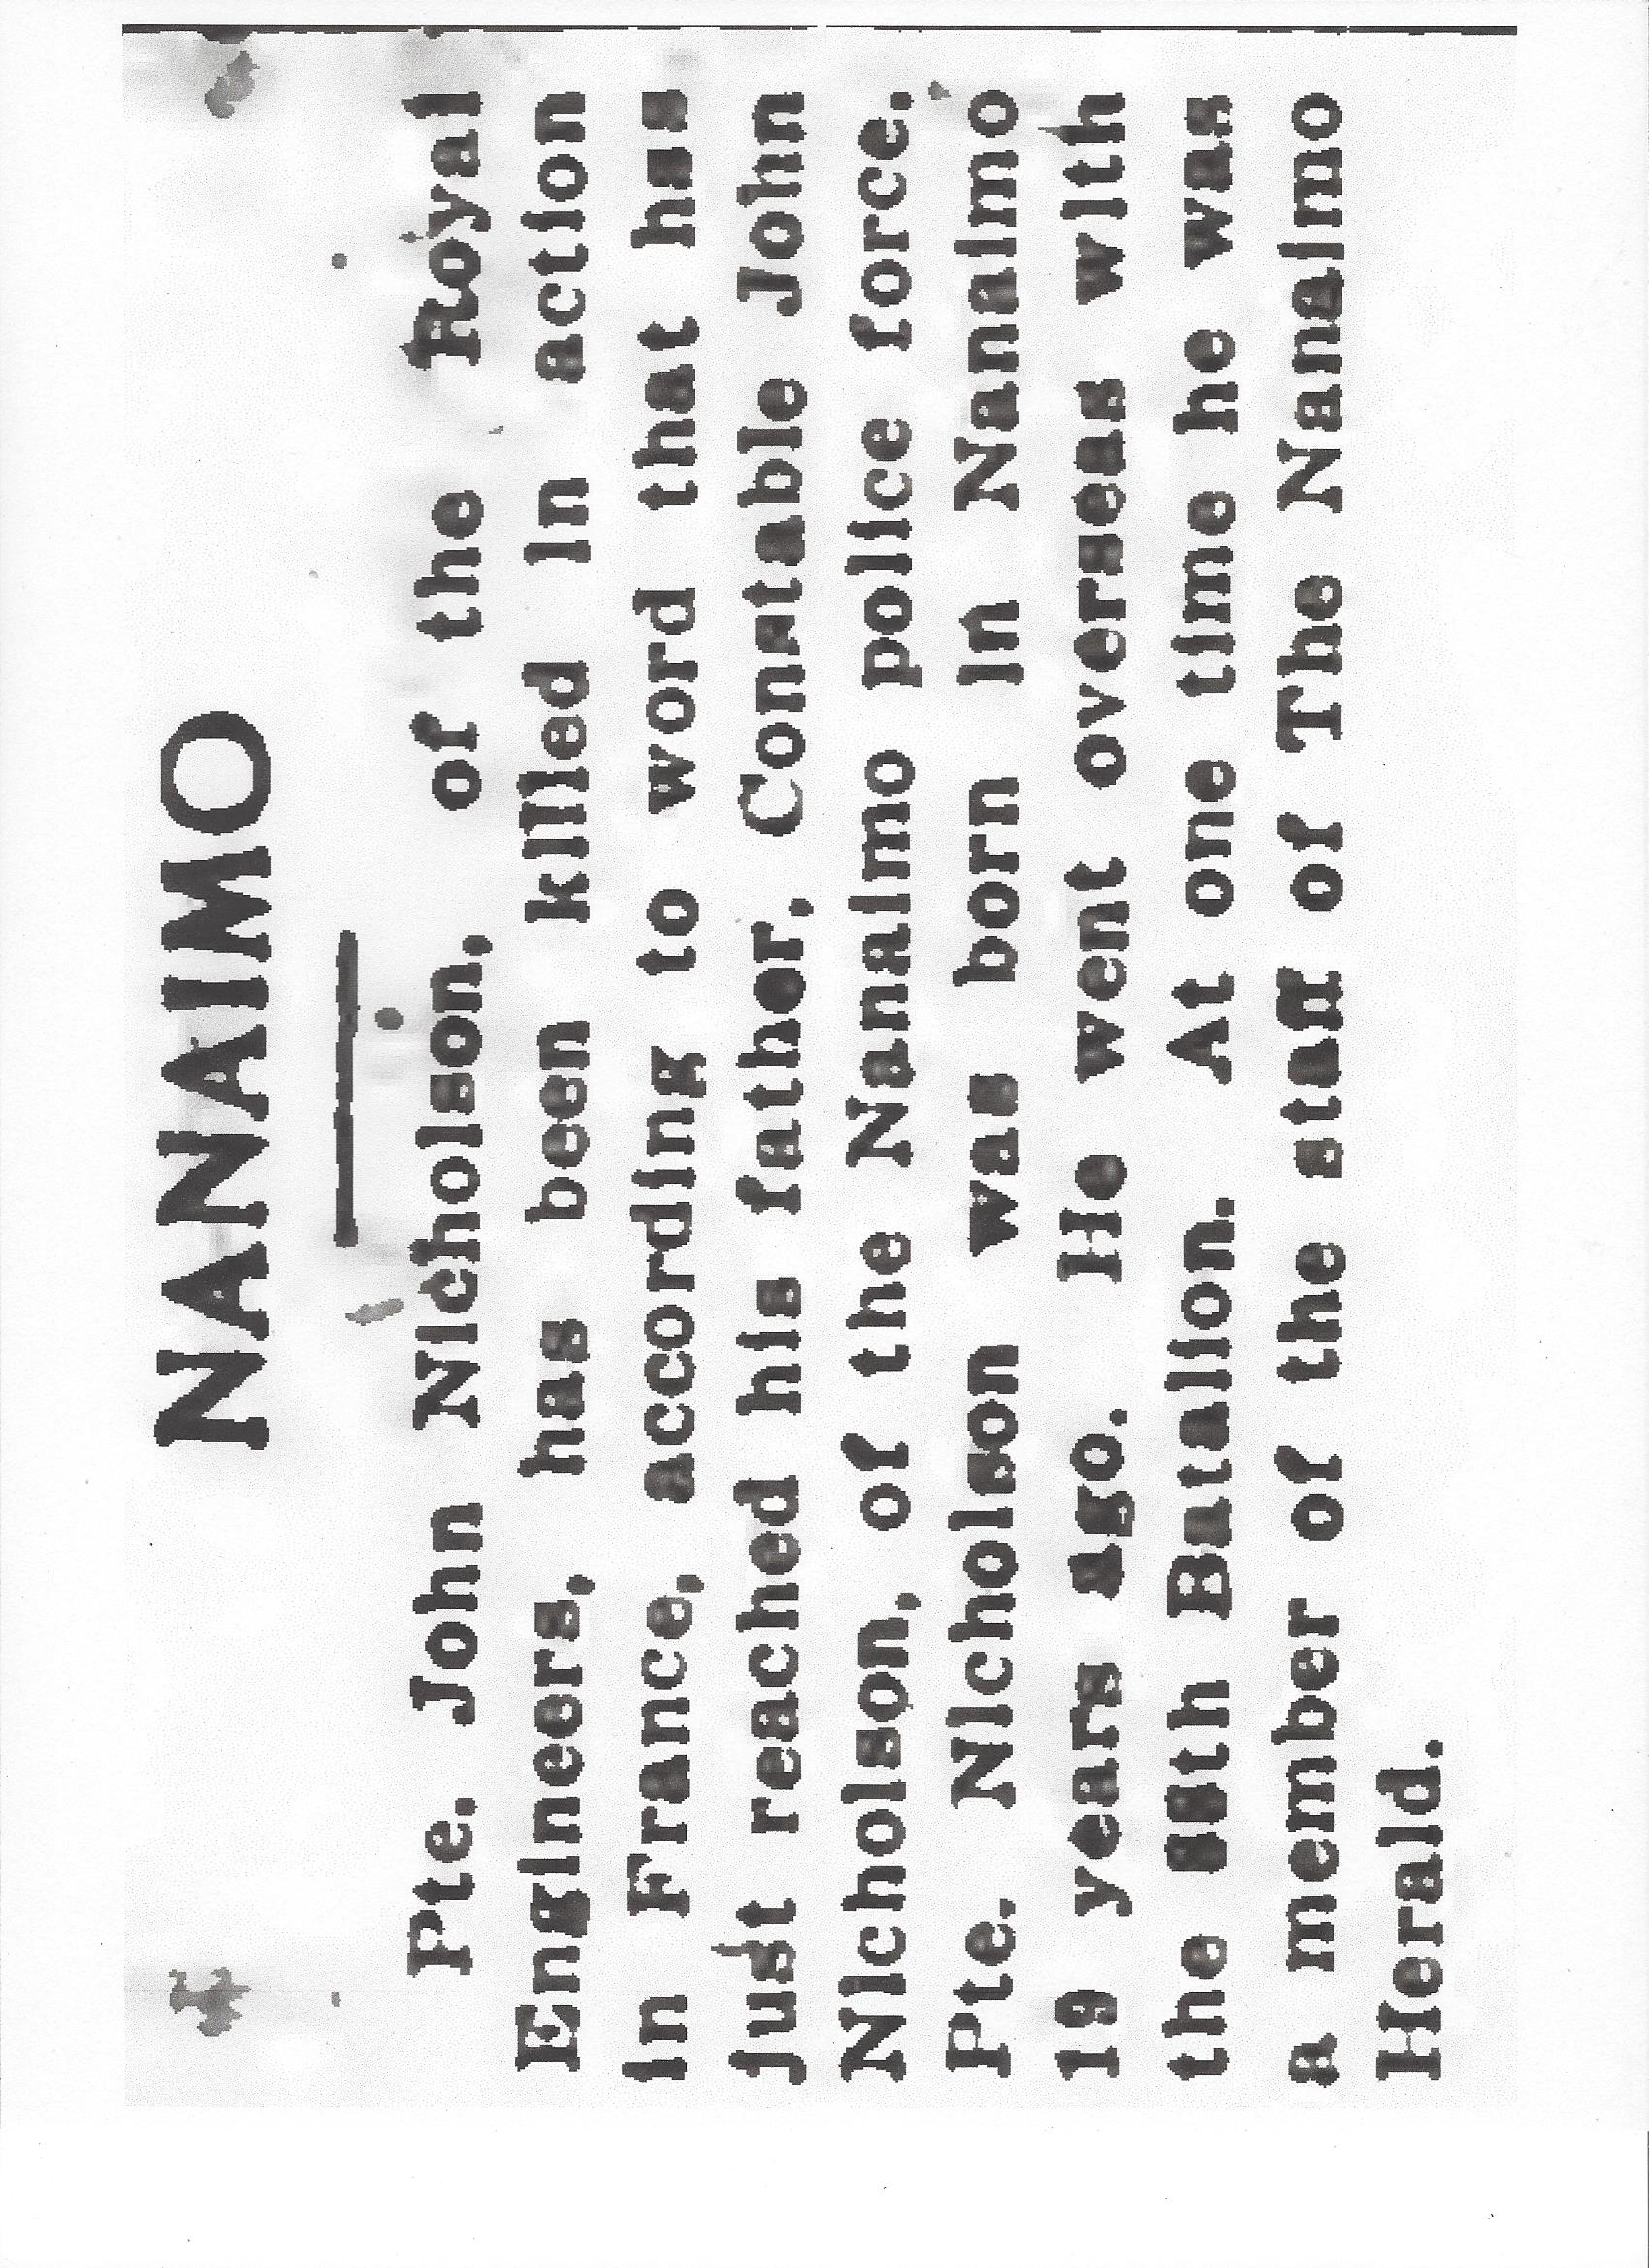 Newspaper clipping– From the Daily Colonist of April 6, 1917. Image taken from web address of http://archive.org/stream/dailycolonist59y100uvic#page/n0/mode/1up